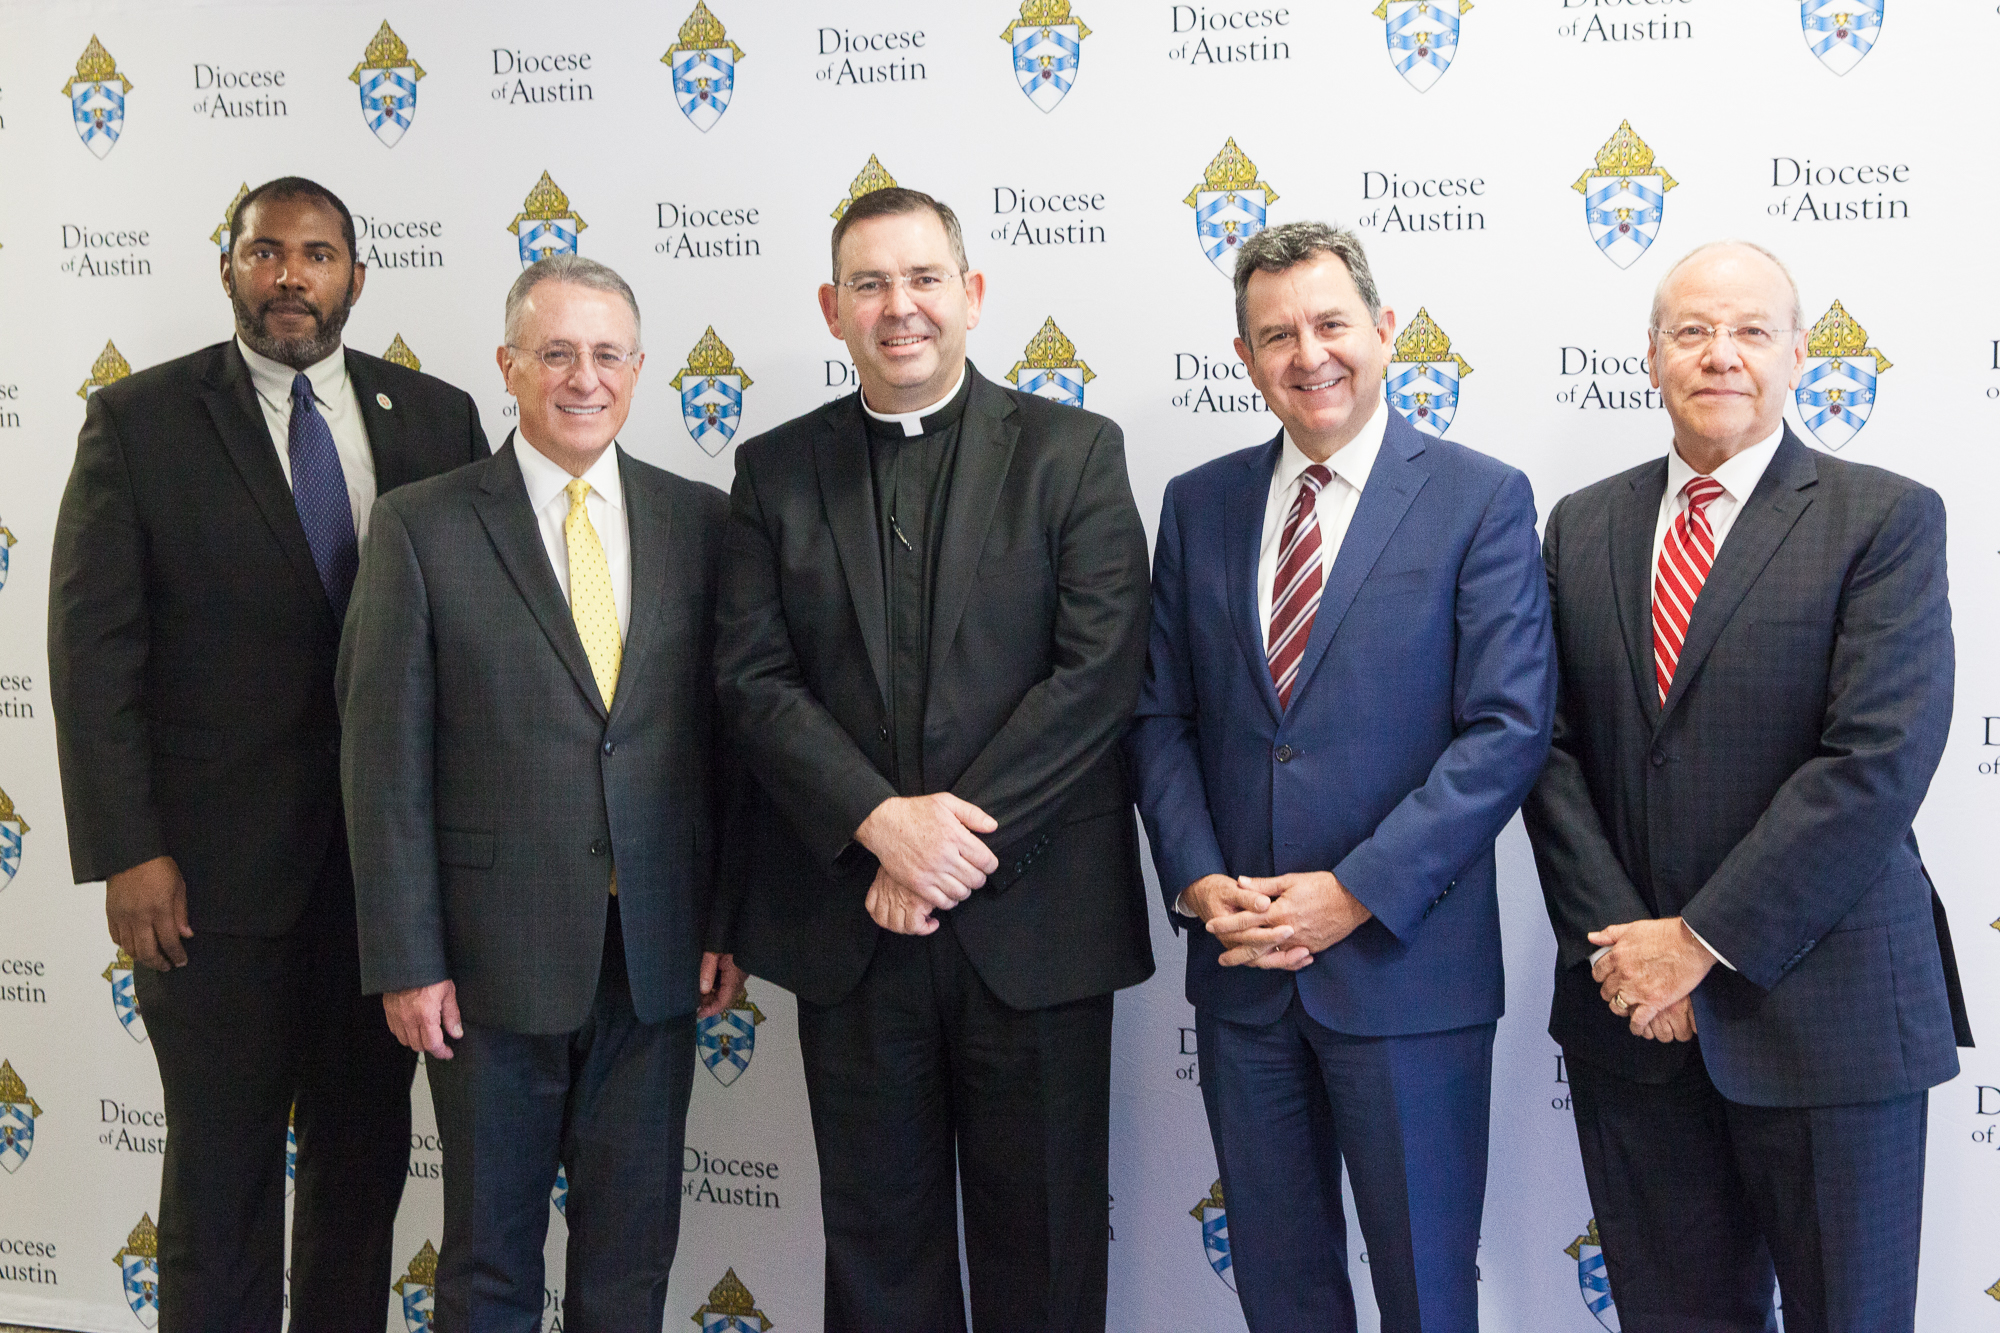 From left to right: Father DeKarlos Blackmon, secretariat director of the Diocese of Austin; Elder Ulisses Soares; Father James Misko, vicar general of the Diocese of Austin; Elder Adrian Ochoa; and Elder Carlos Villareal at the Diocese of Austin on Oct. 18, 2019.